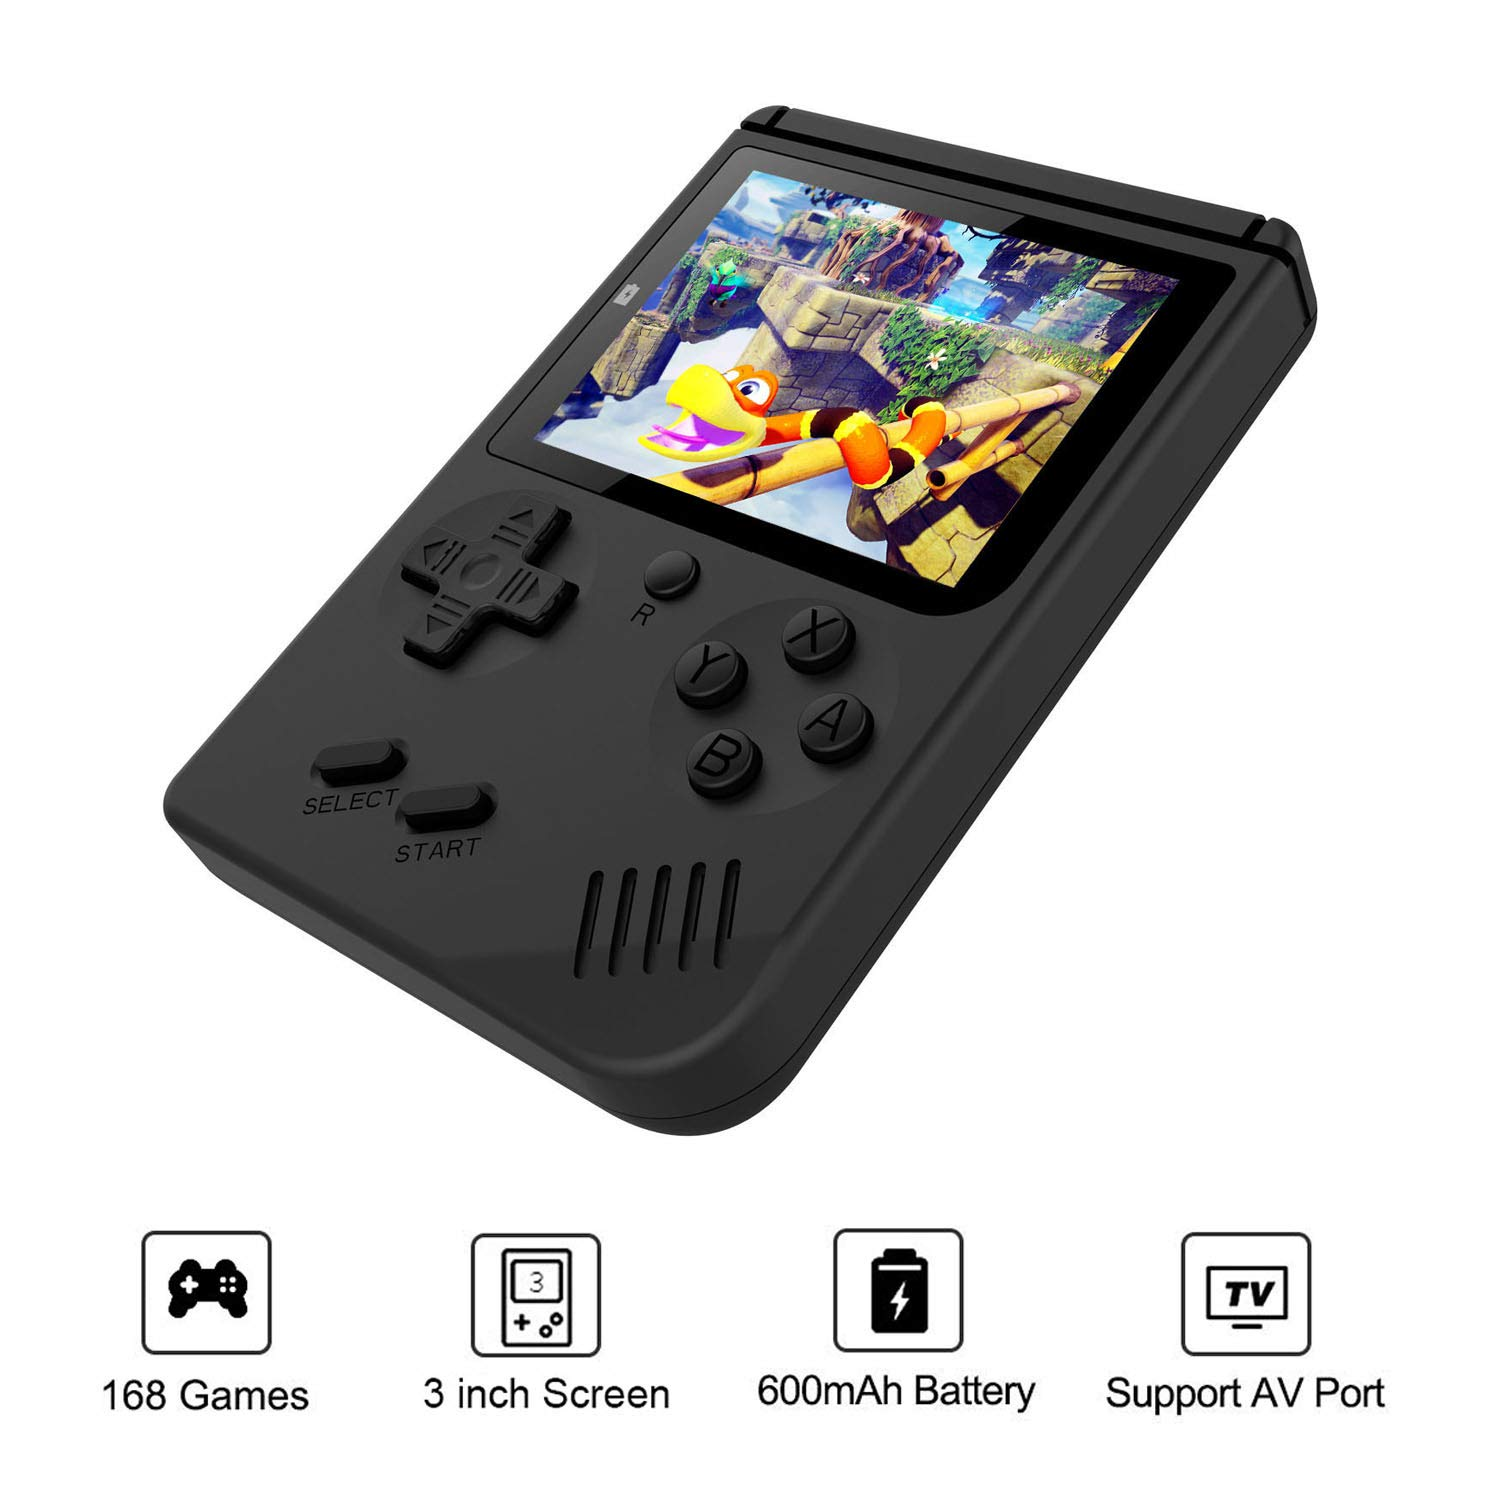 JAFATOY Retro Handheld Games Console - 168 Classic Games 8 Bit Games 3 inch Screen Video Games with AV Cable Play on TV (Black) by JAFATOY (Image #3)